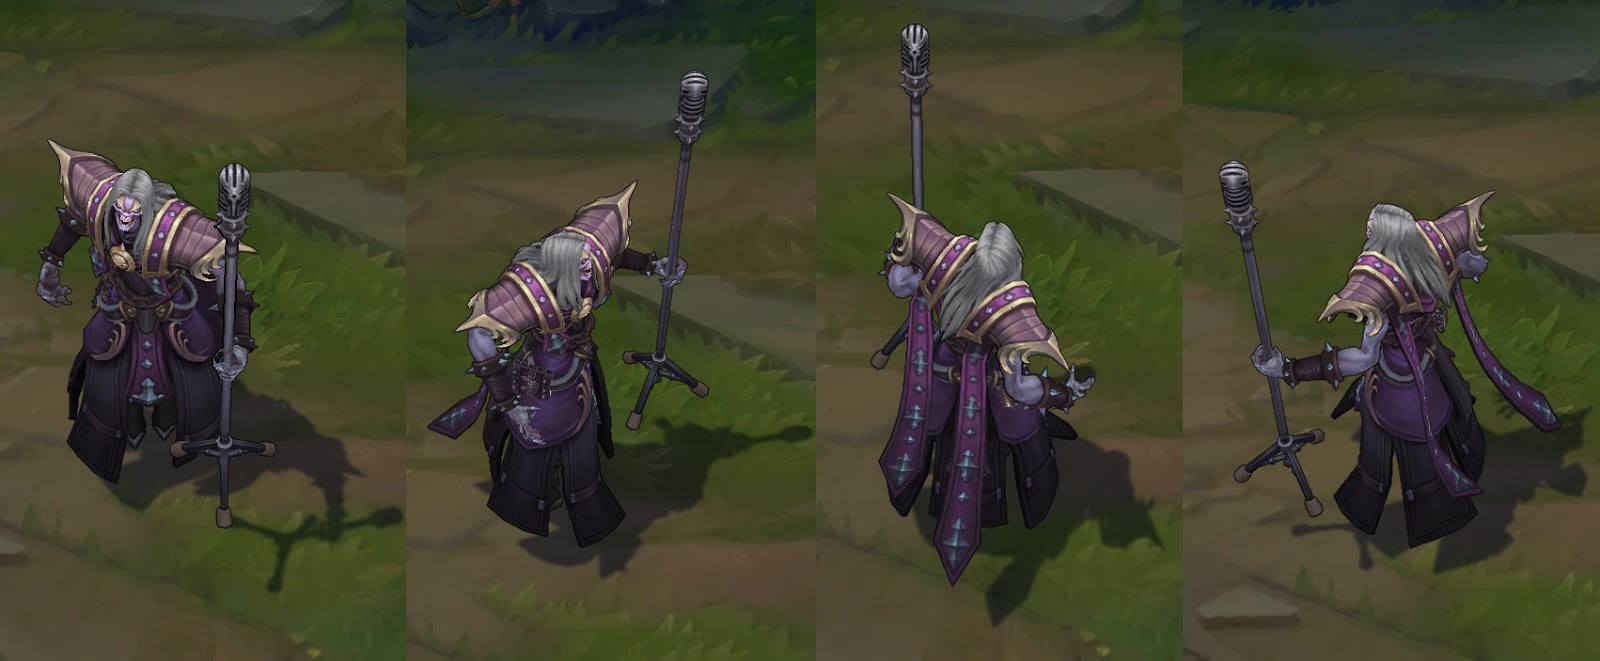 League of legends karthus skins